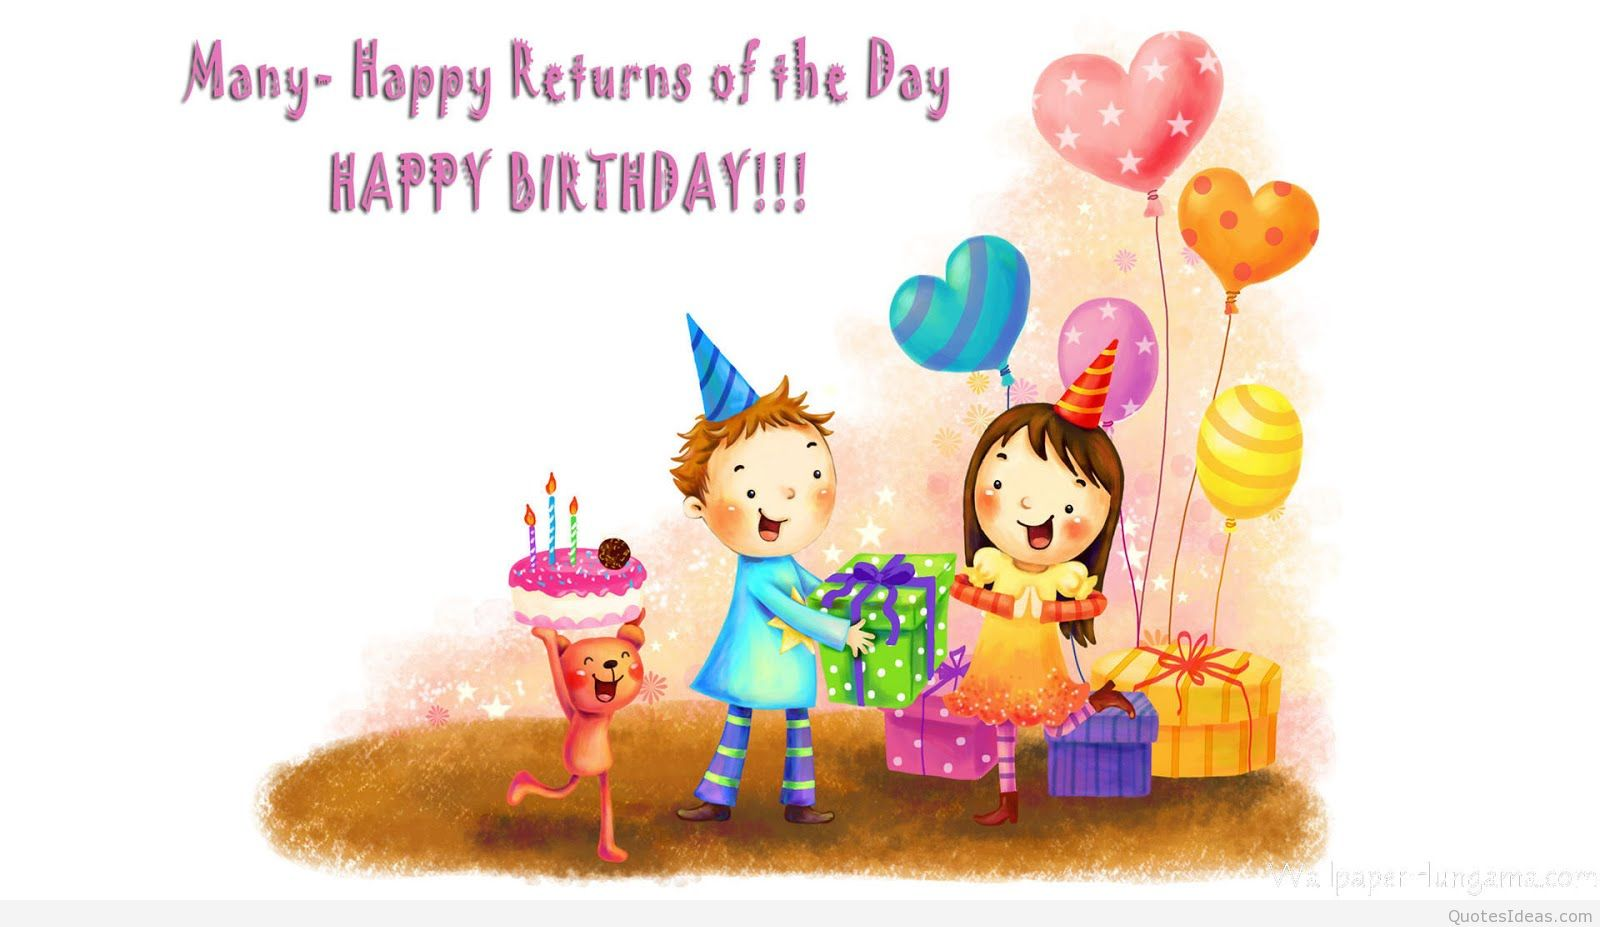 happy birthday wishes to brother from sister ; happy-birthday-wishes-wallpaper-1920x1080-3407